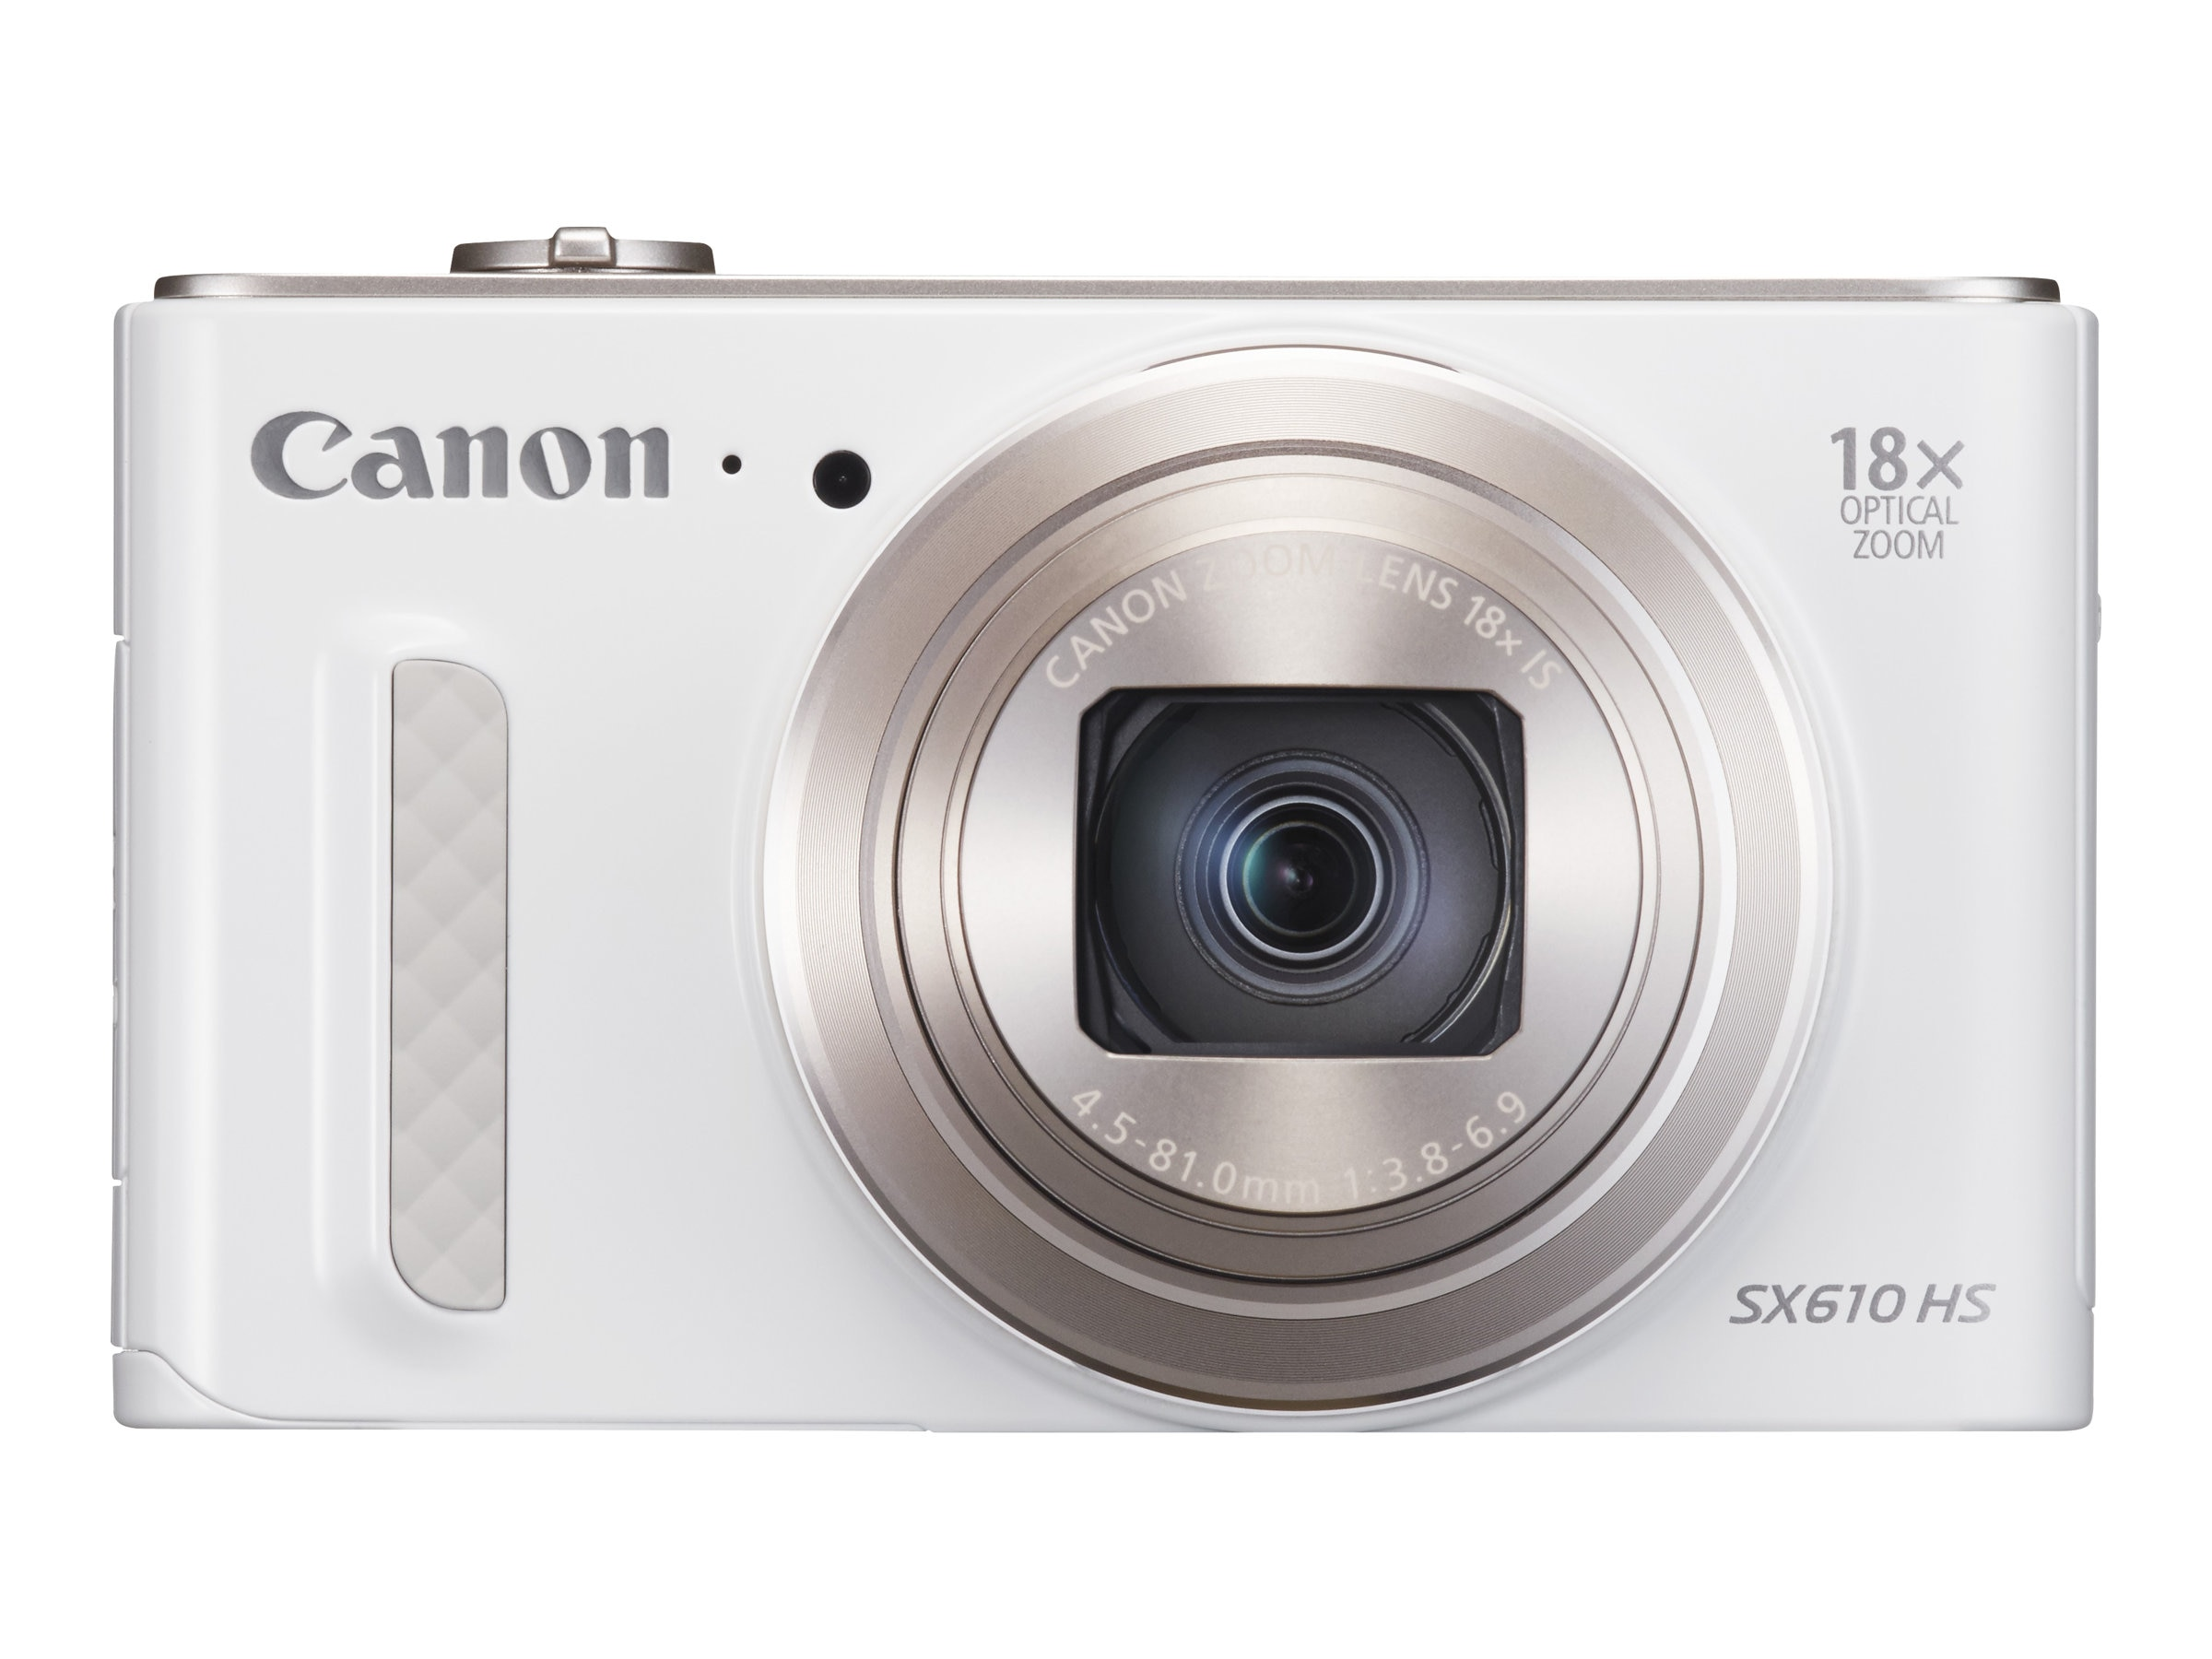 Canon Powershot SX610 HS Camera, 20.2MP, 18x Zoom, White, 0112C001, 18524283, Cameras - Digital - Point & Shoot